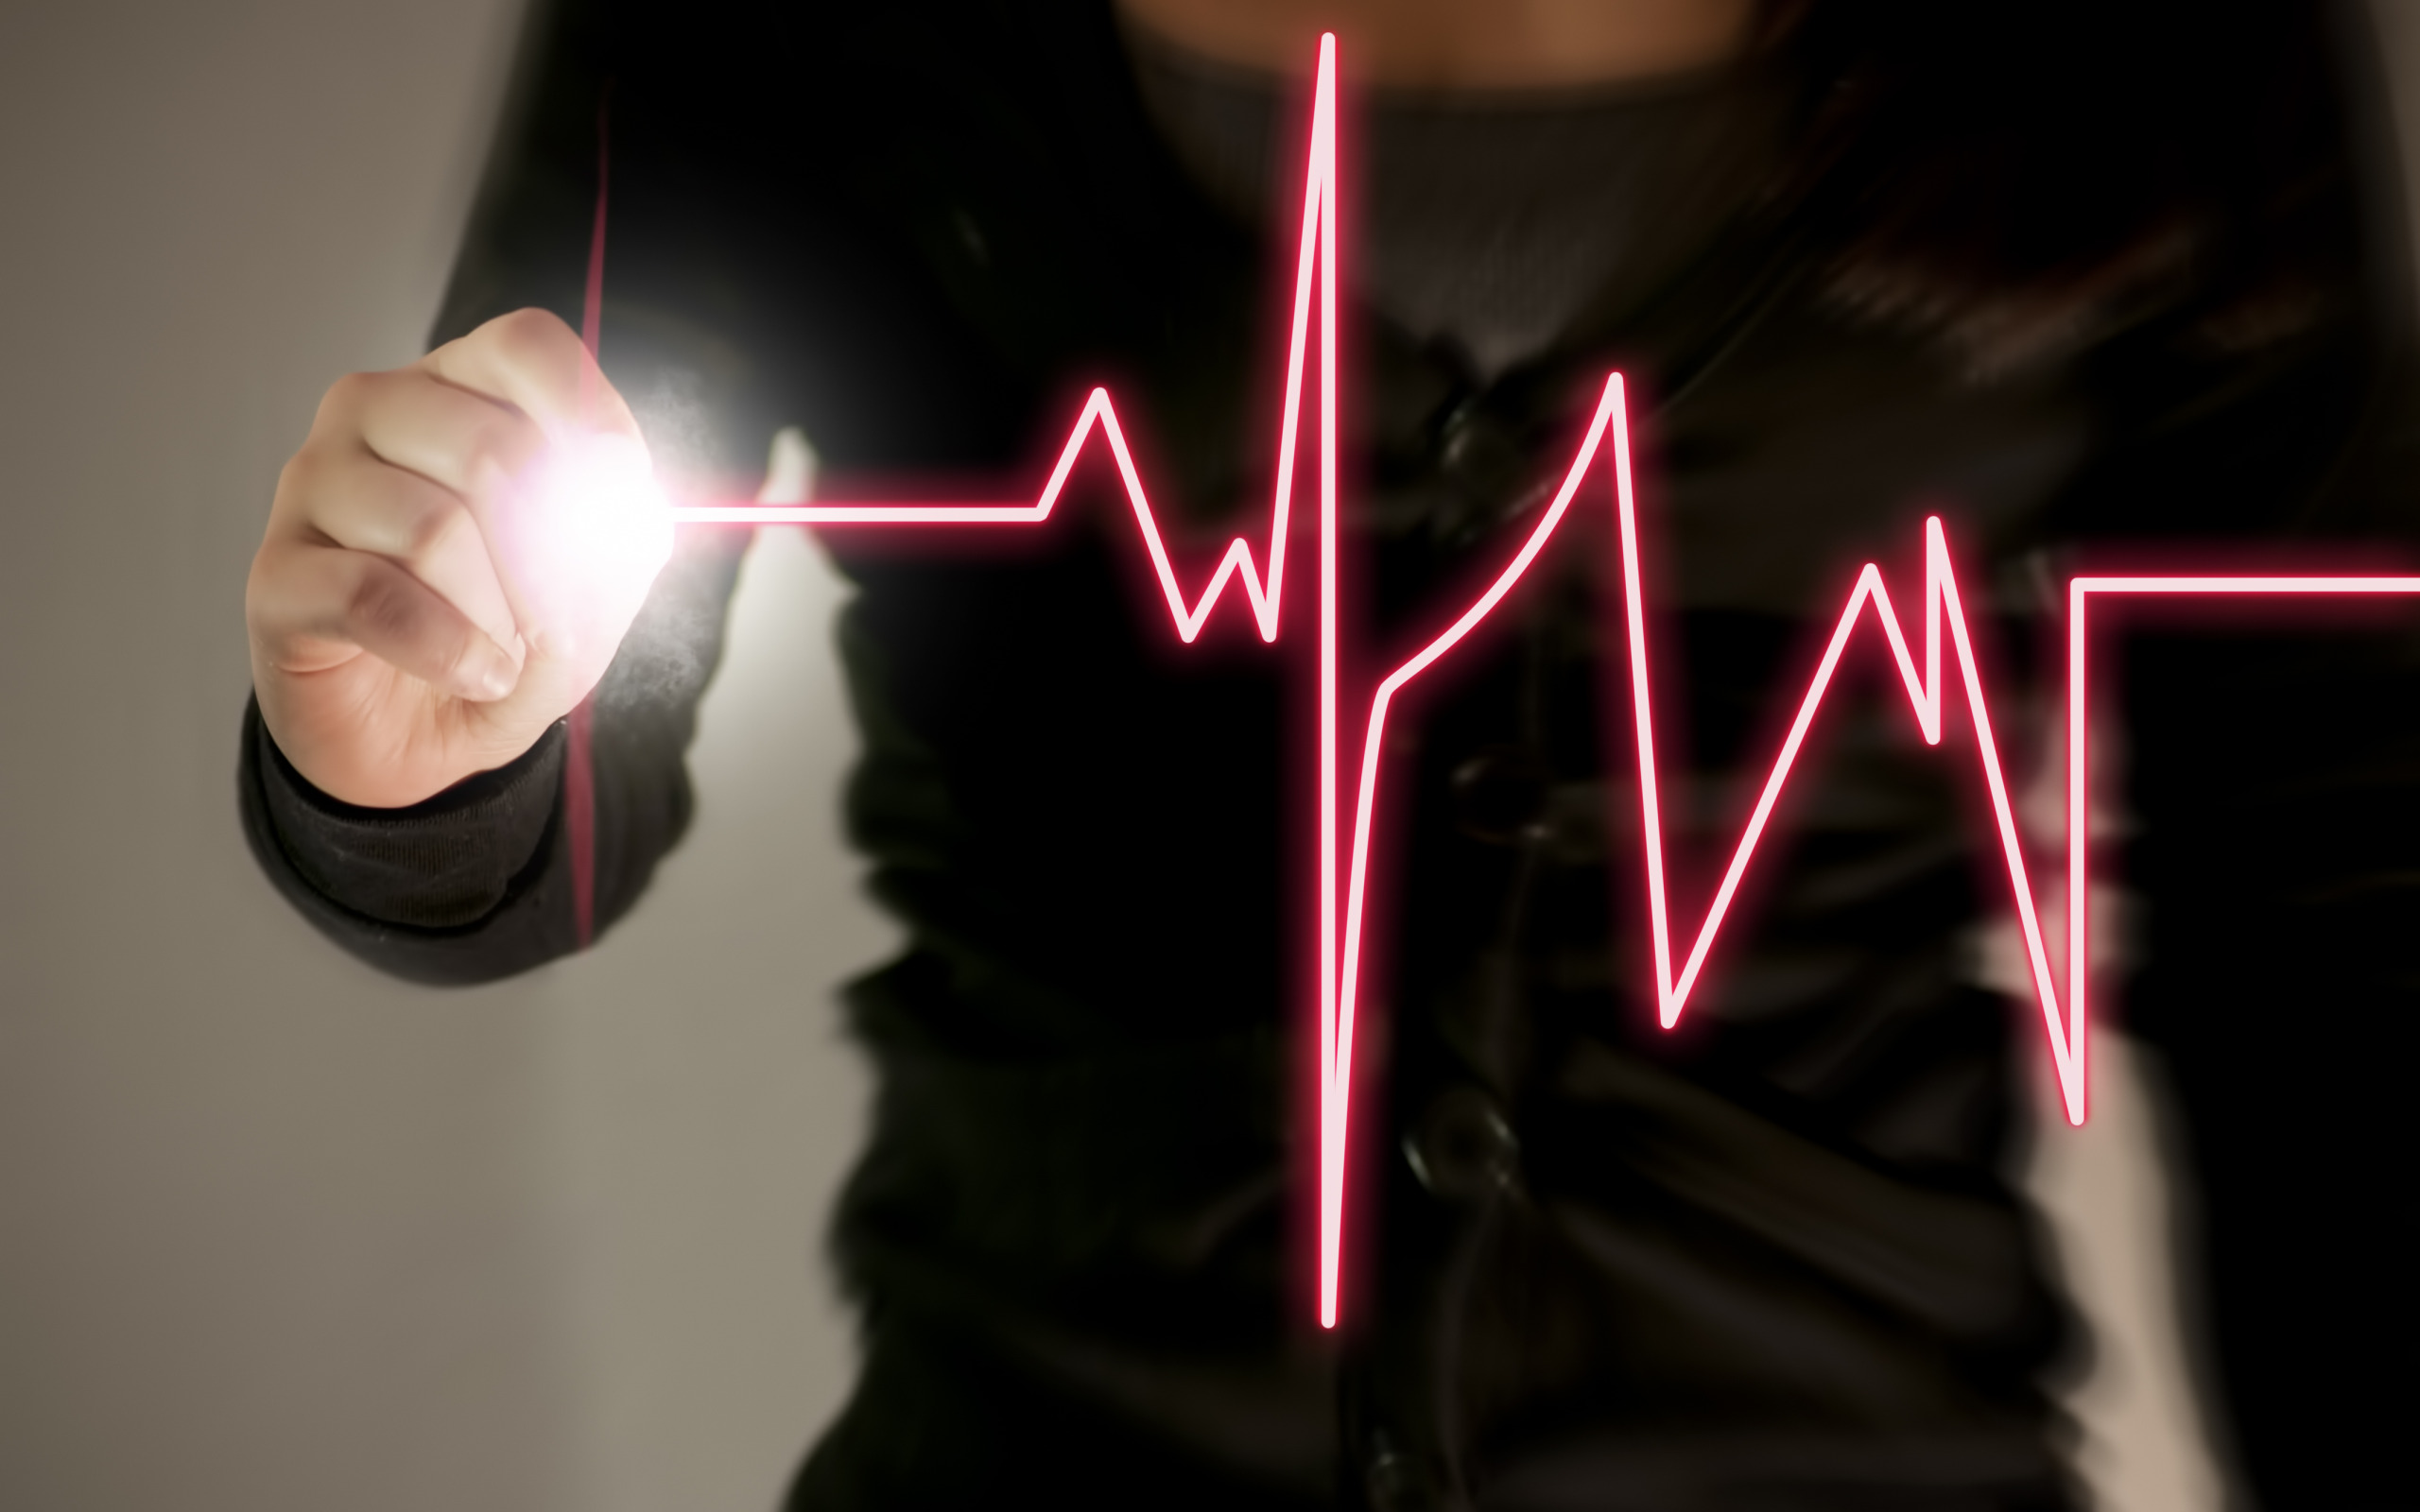 magnificent heartbeat wallpaper full hd pictures